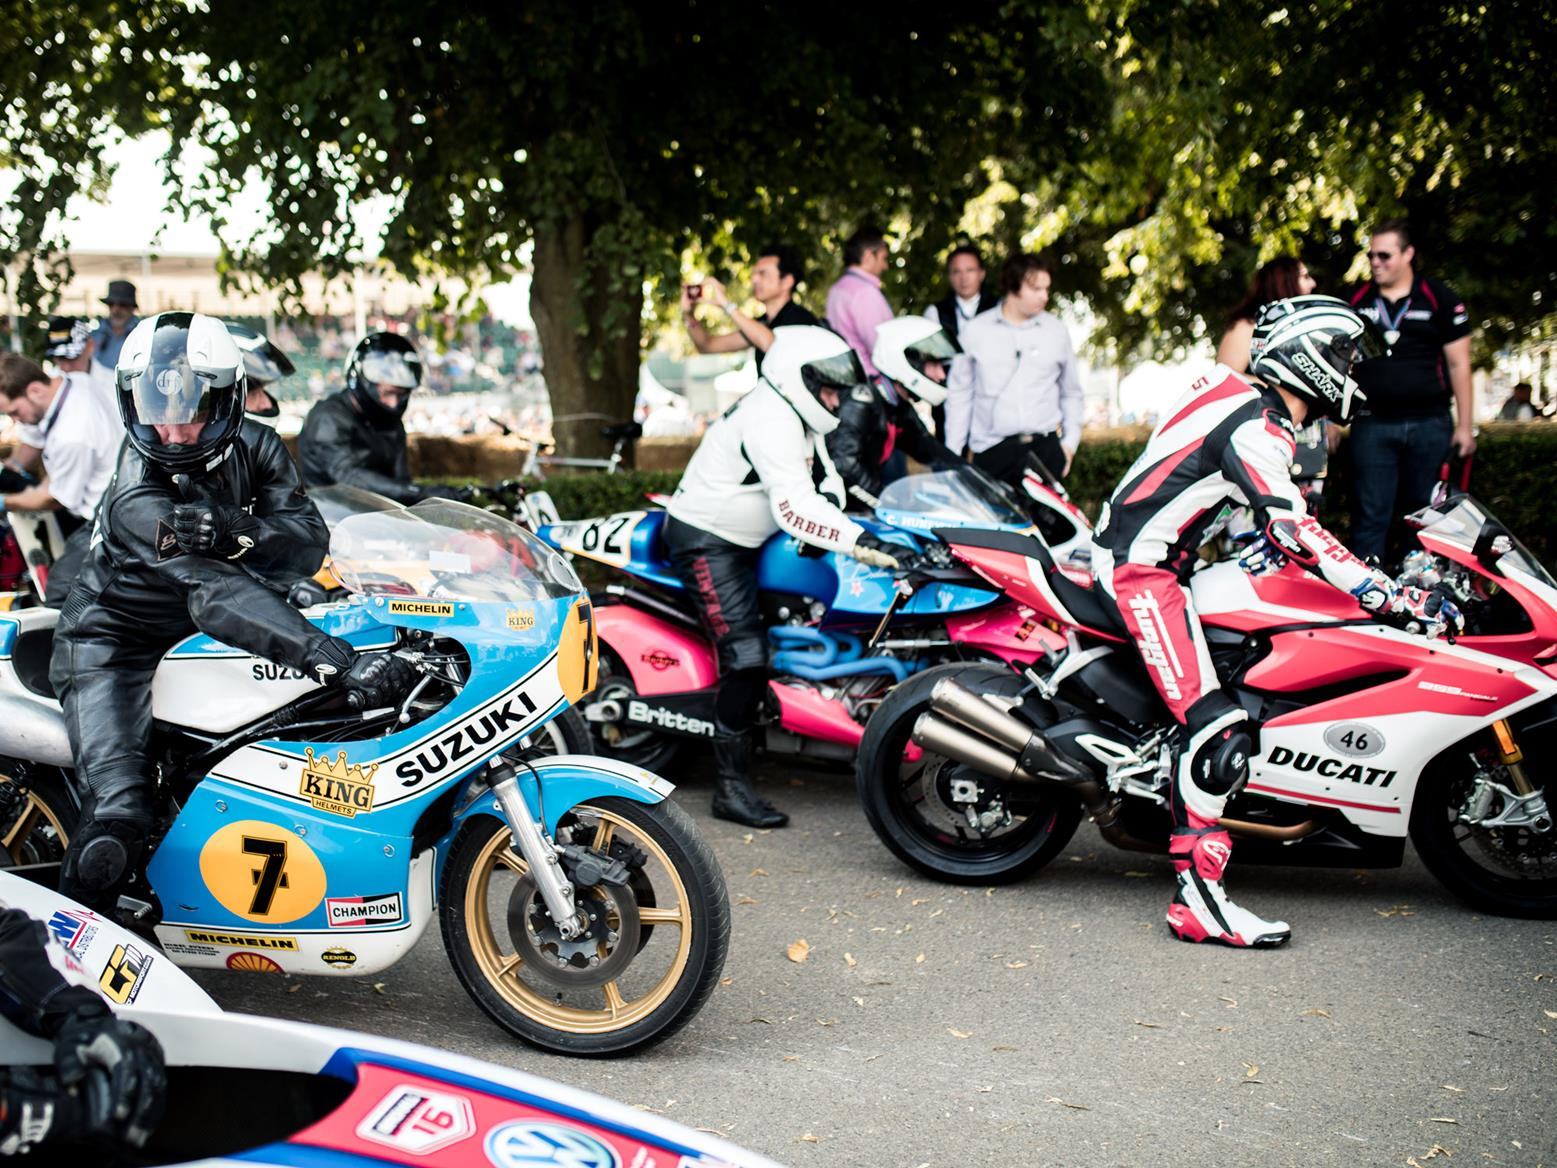 It's not just Honda motorcycles at the Festival of Speed. Image credit: Stephanie O' Callaghan/Goodwood